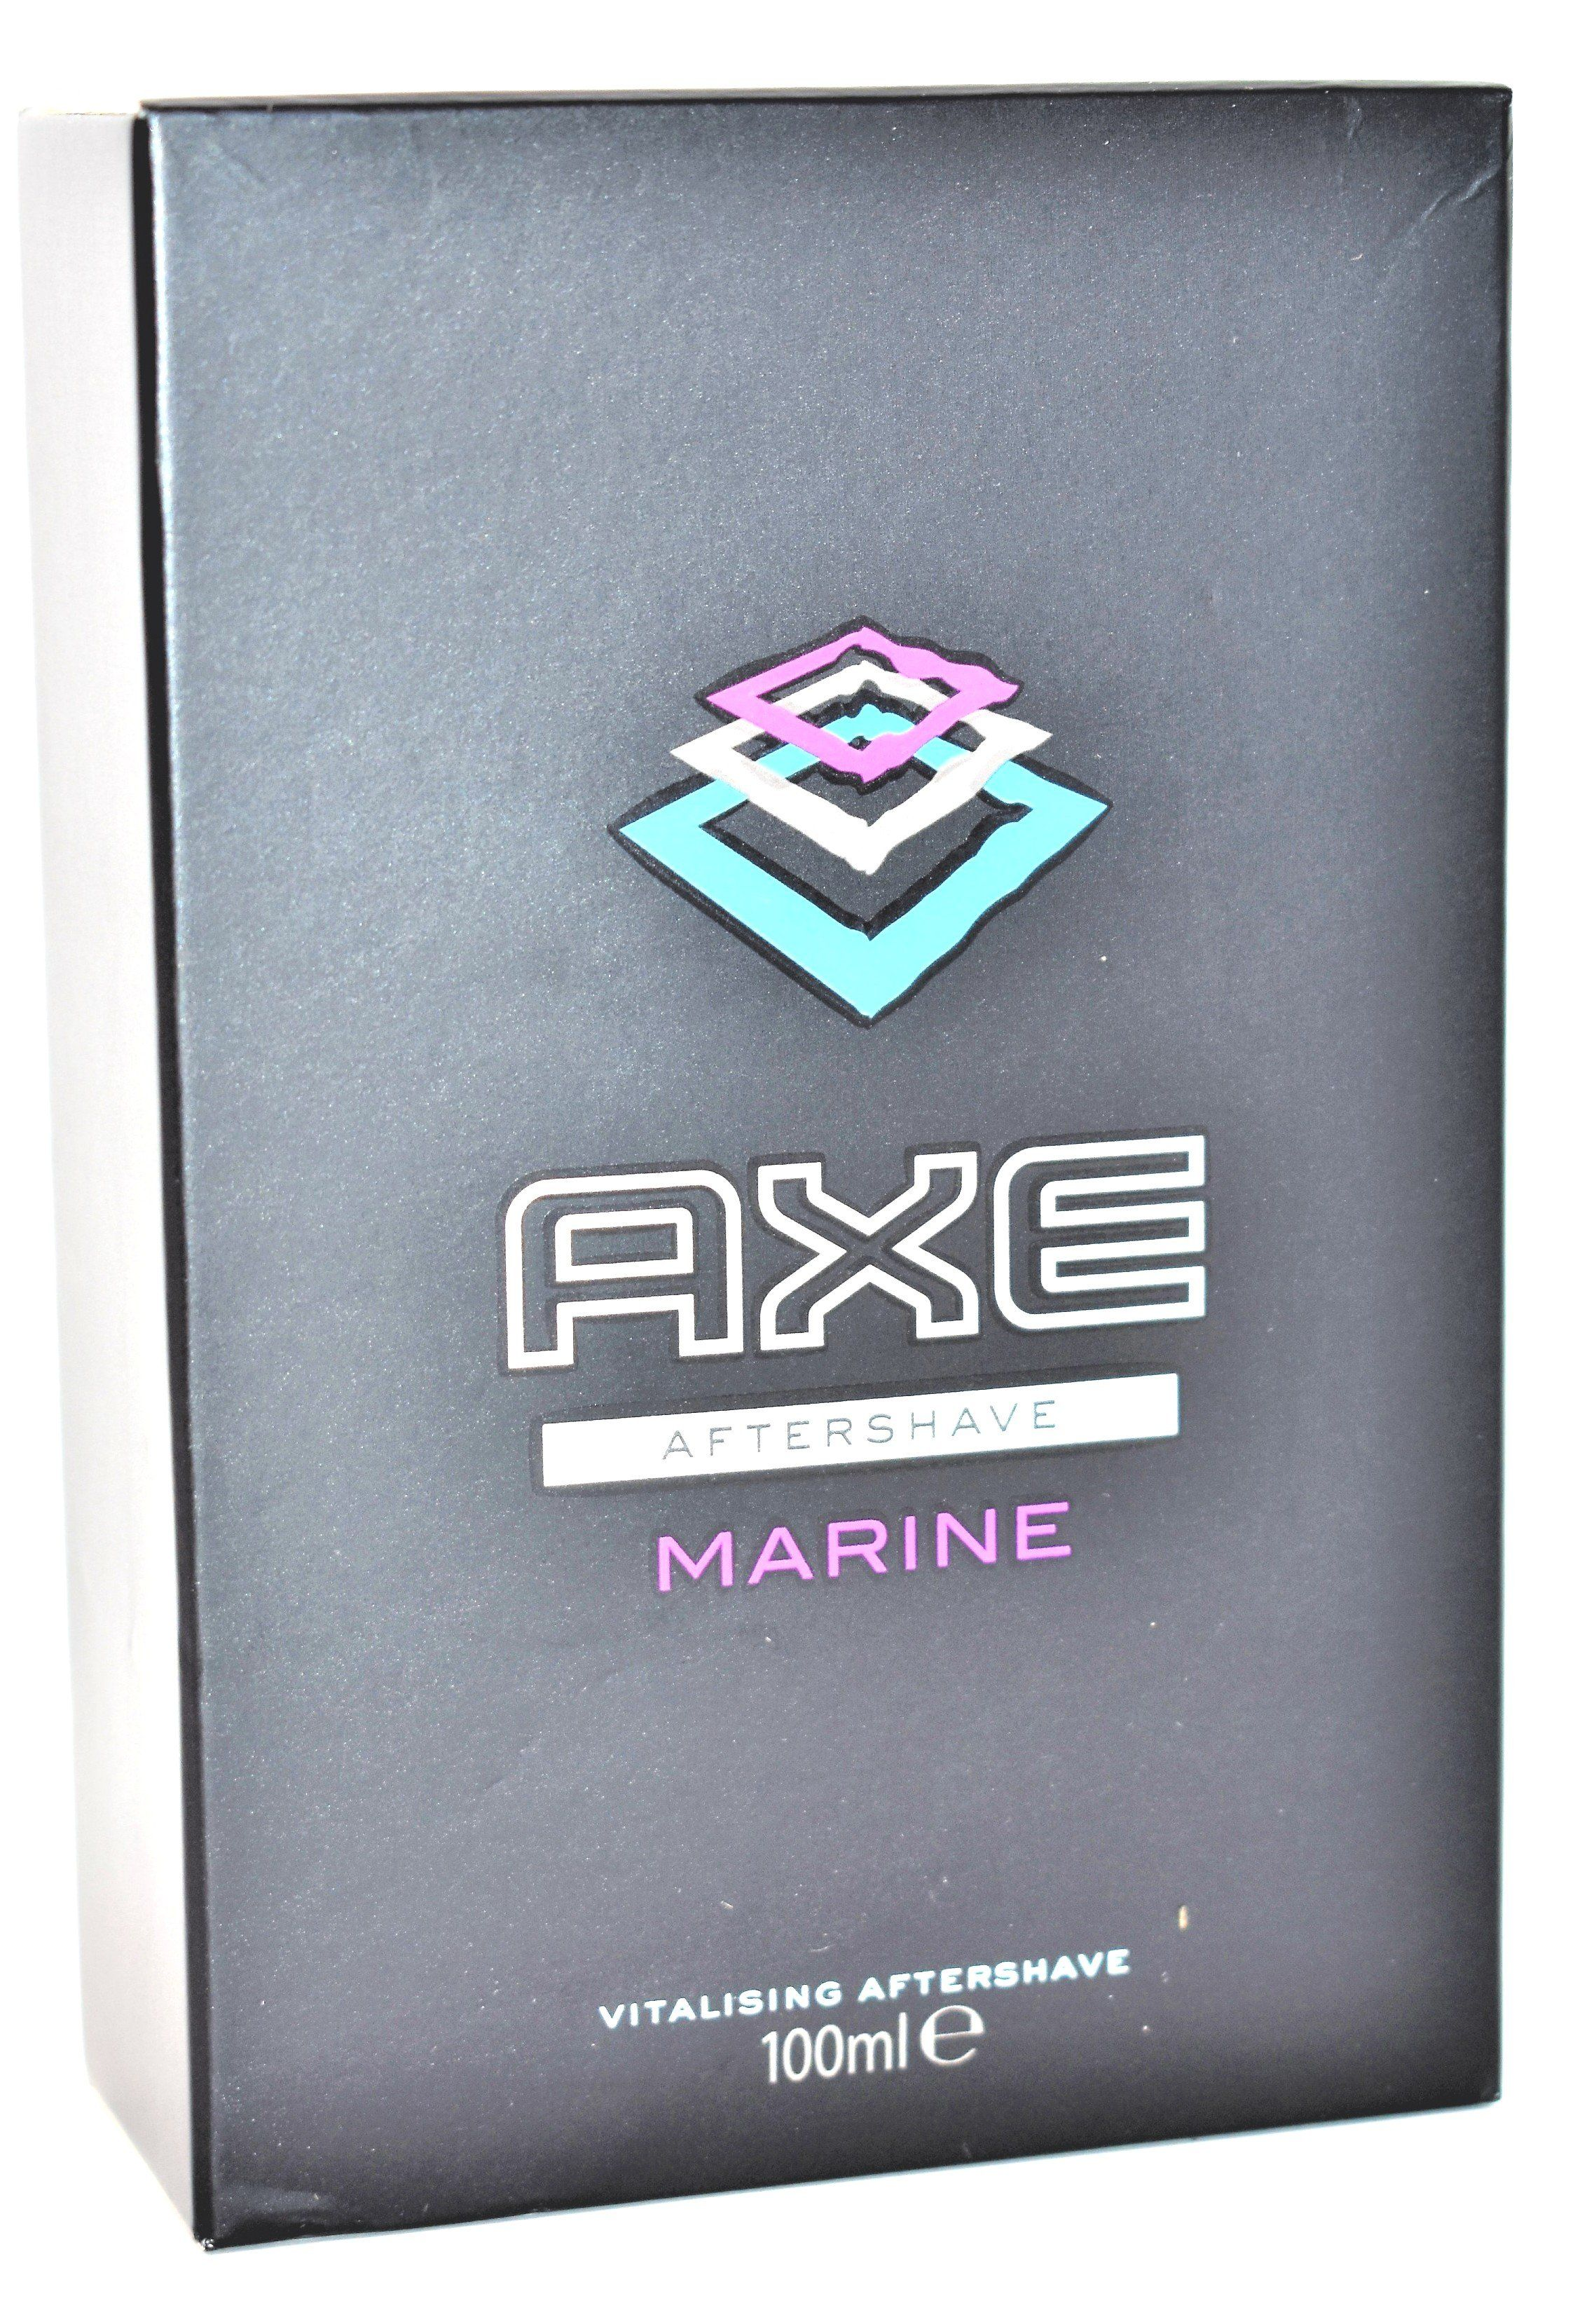 a4b44f1cf0d Axe Marine Aftershave, 100ml Home goods and awesome gifts for only $2! Free  Shipping over $25! Free MP3 player with every order (Code: FREEMP3) Shop  now at ...